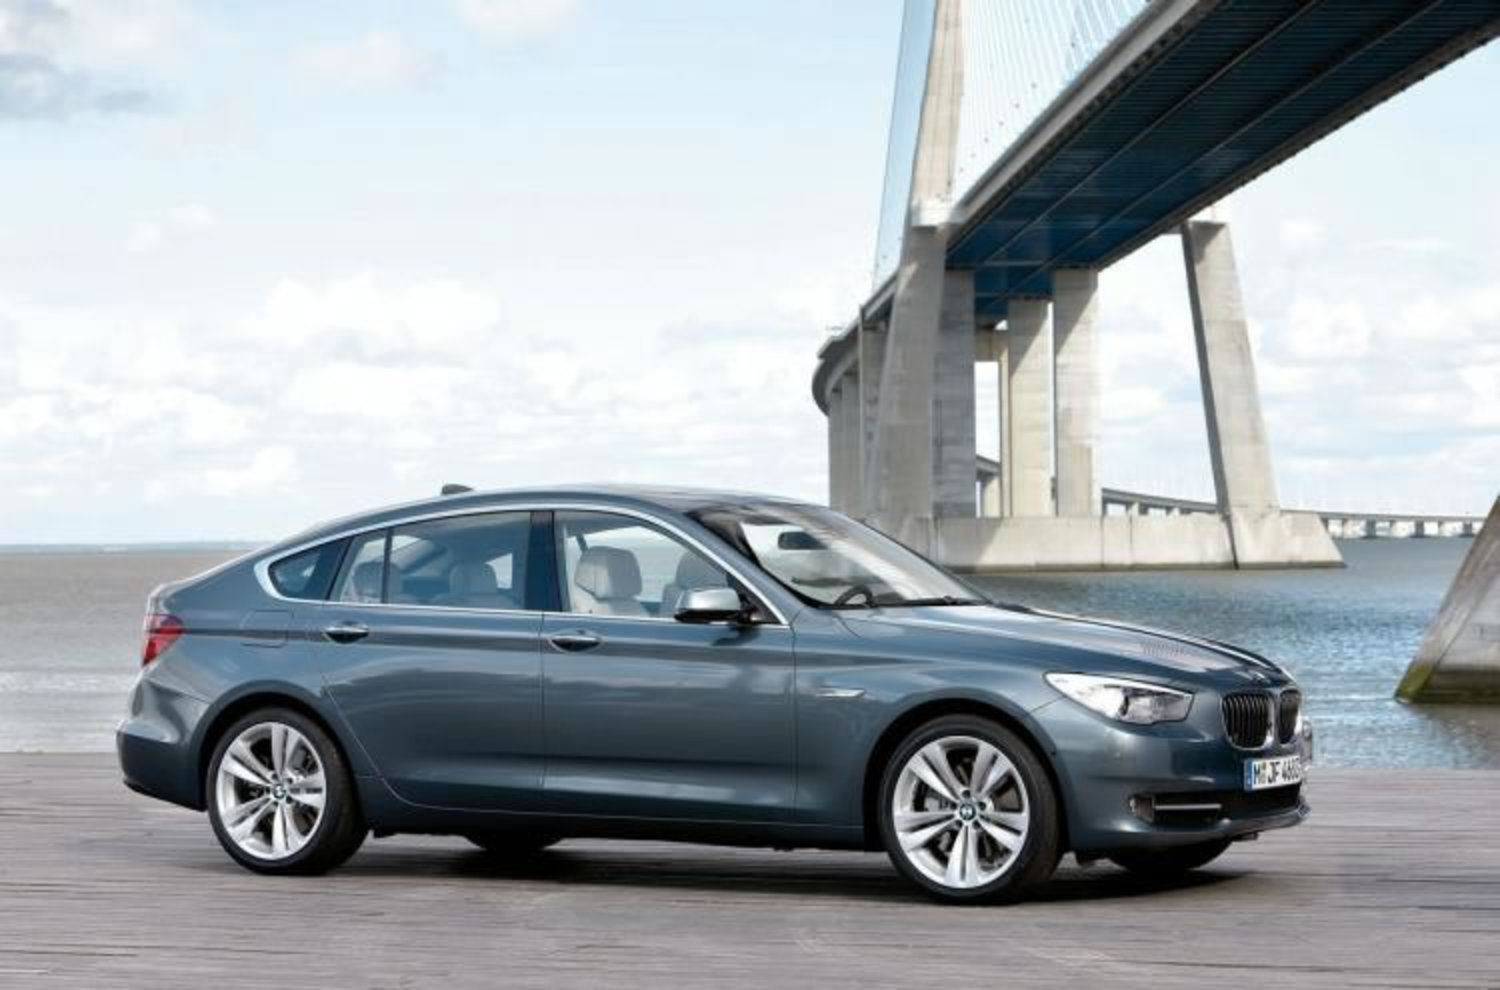 BMW 535i - 5. Image file size: 105.77Kb Resolution: 1500 x 1000